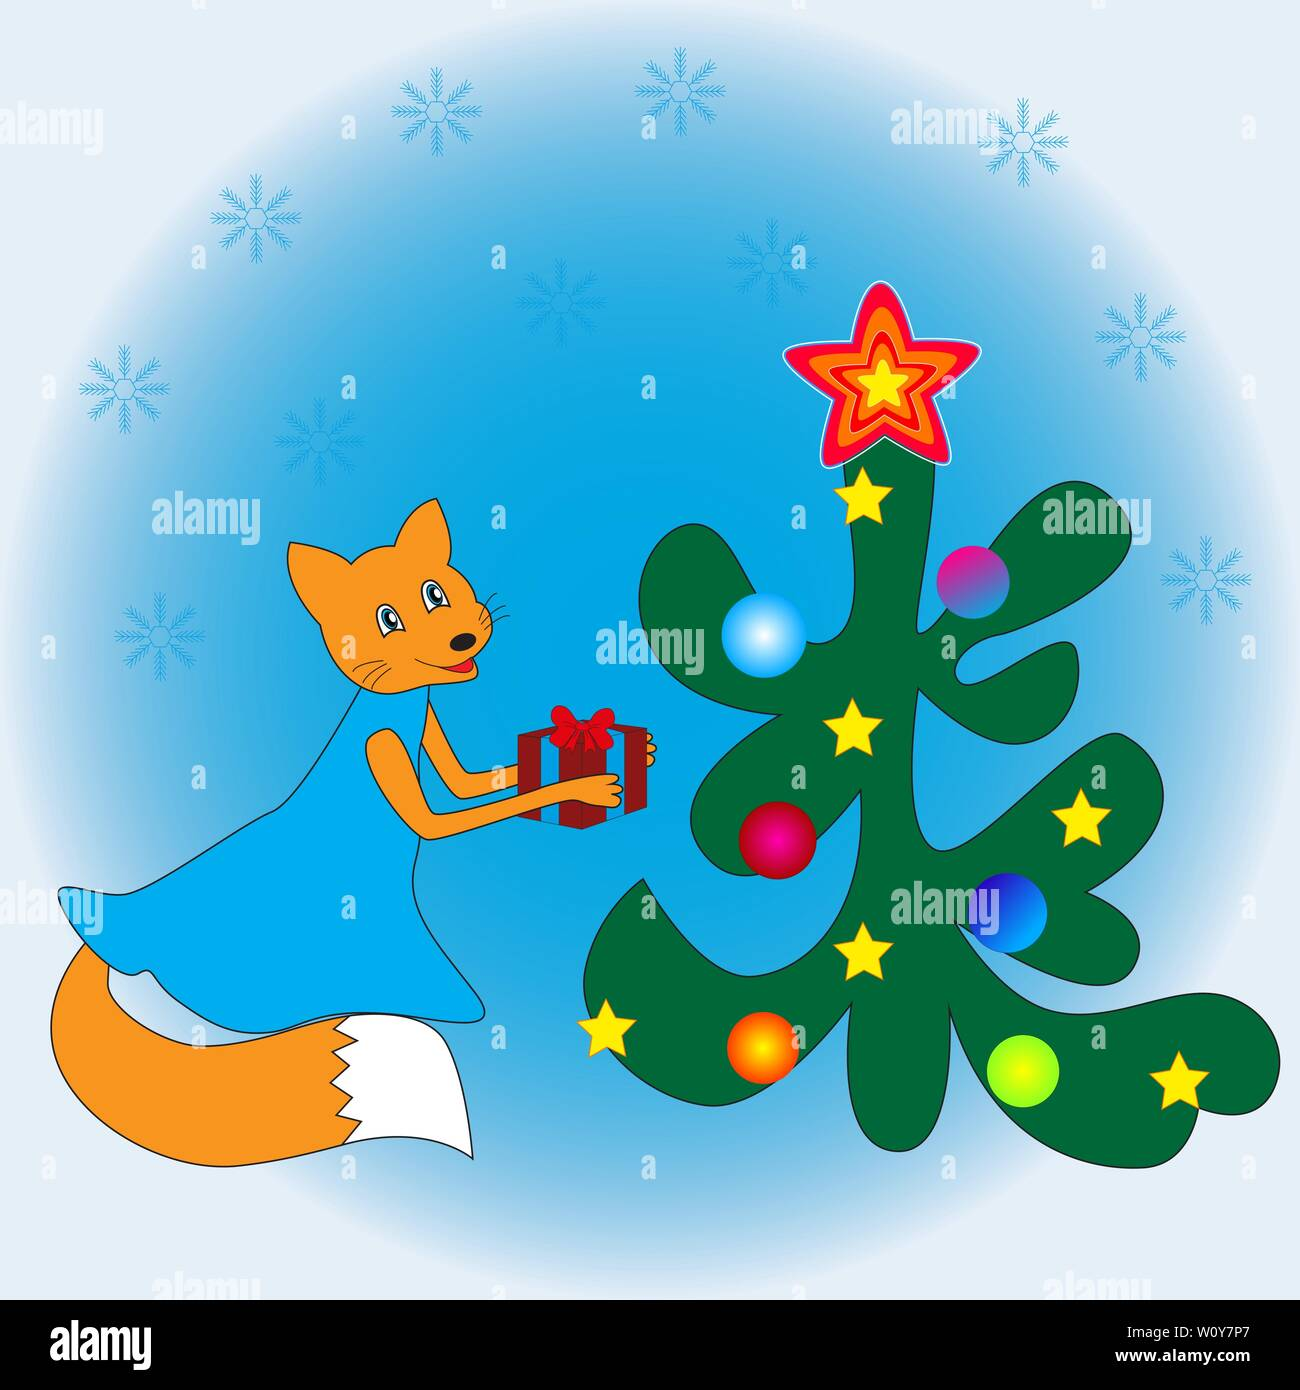 Cartoon Fox Presents A Gift To The Christmas Tree Stock Vector Image Art Alamy Download tree cartoon stock vectors. alamy